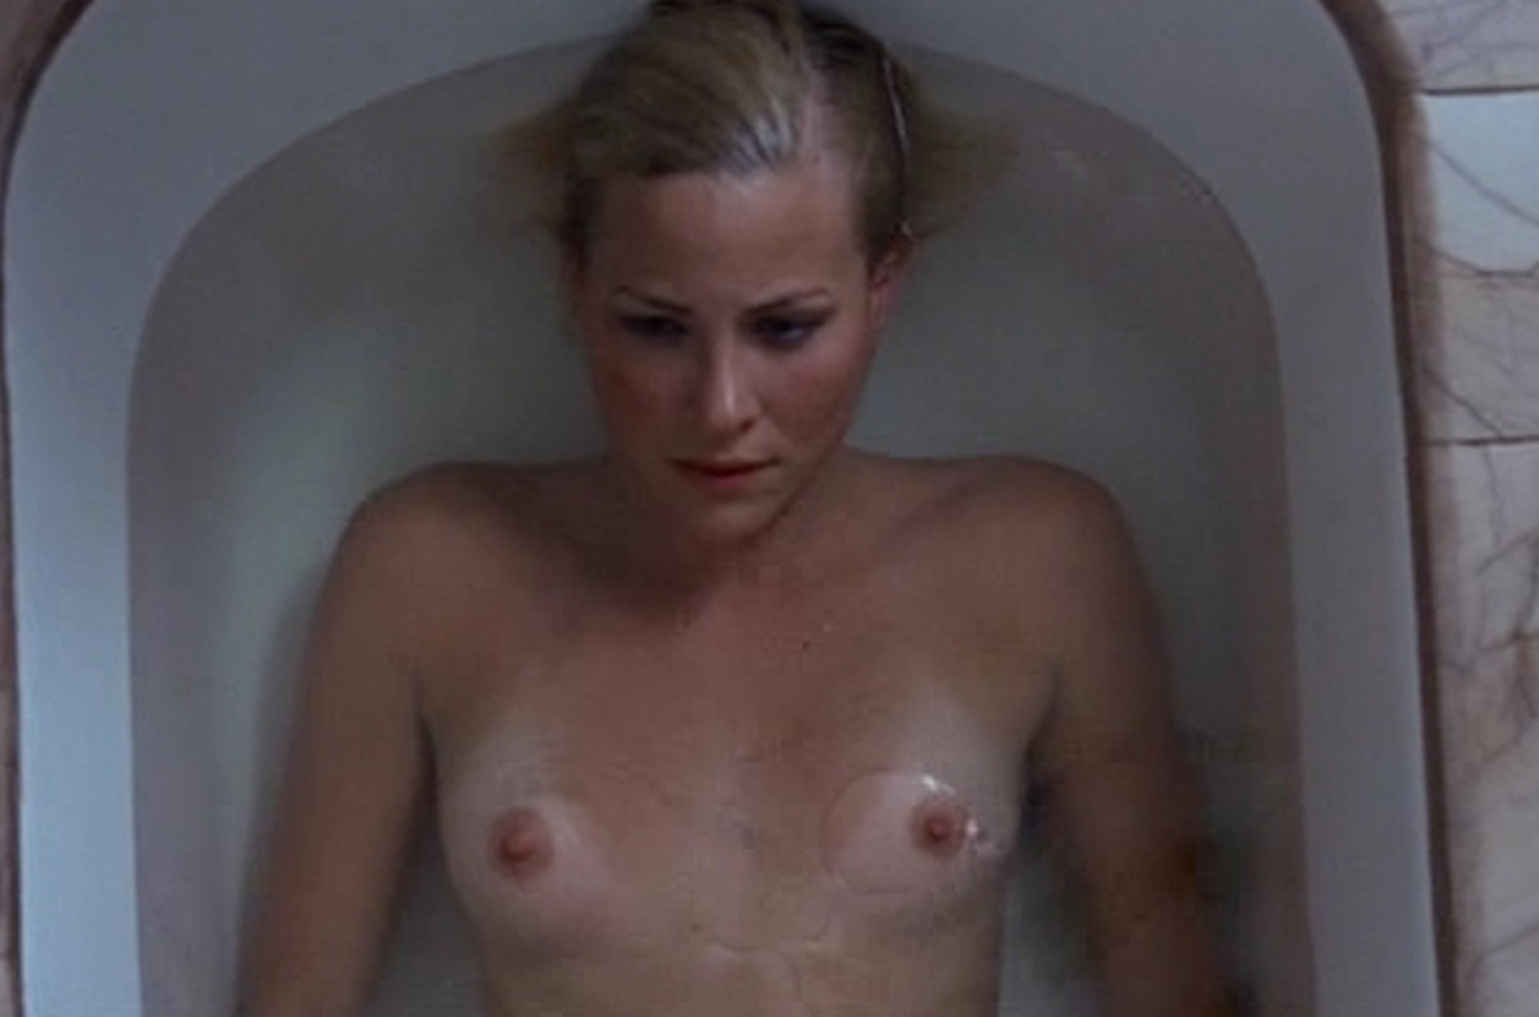 Brittany daniel hot desnuda regret, that